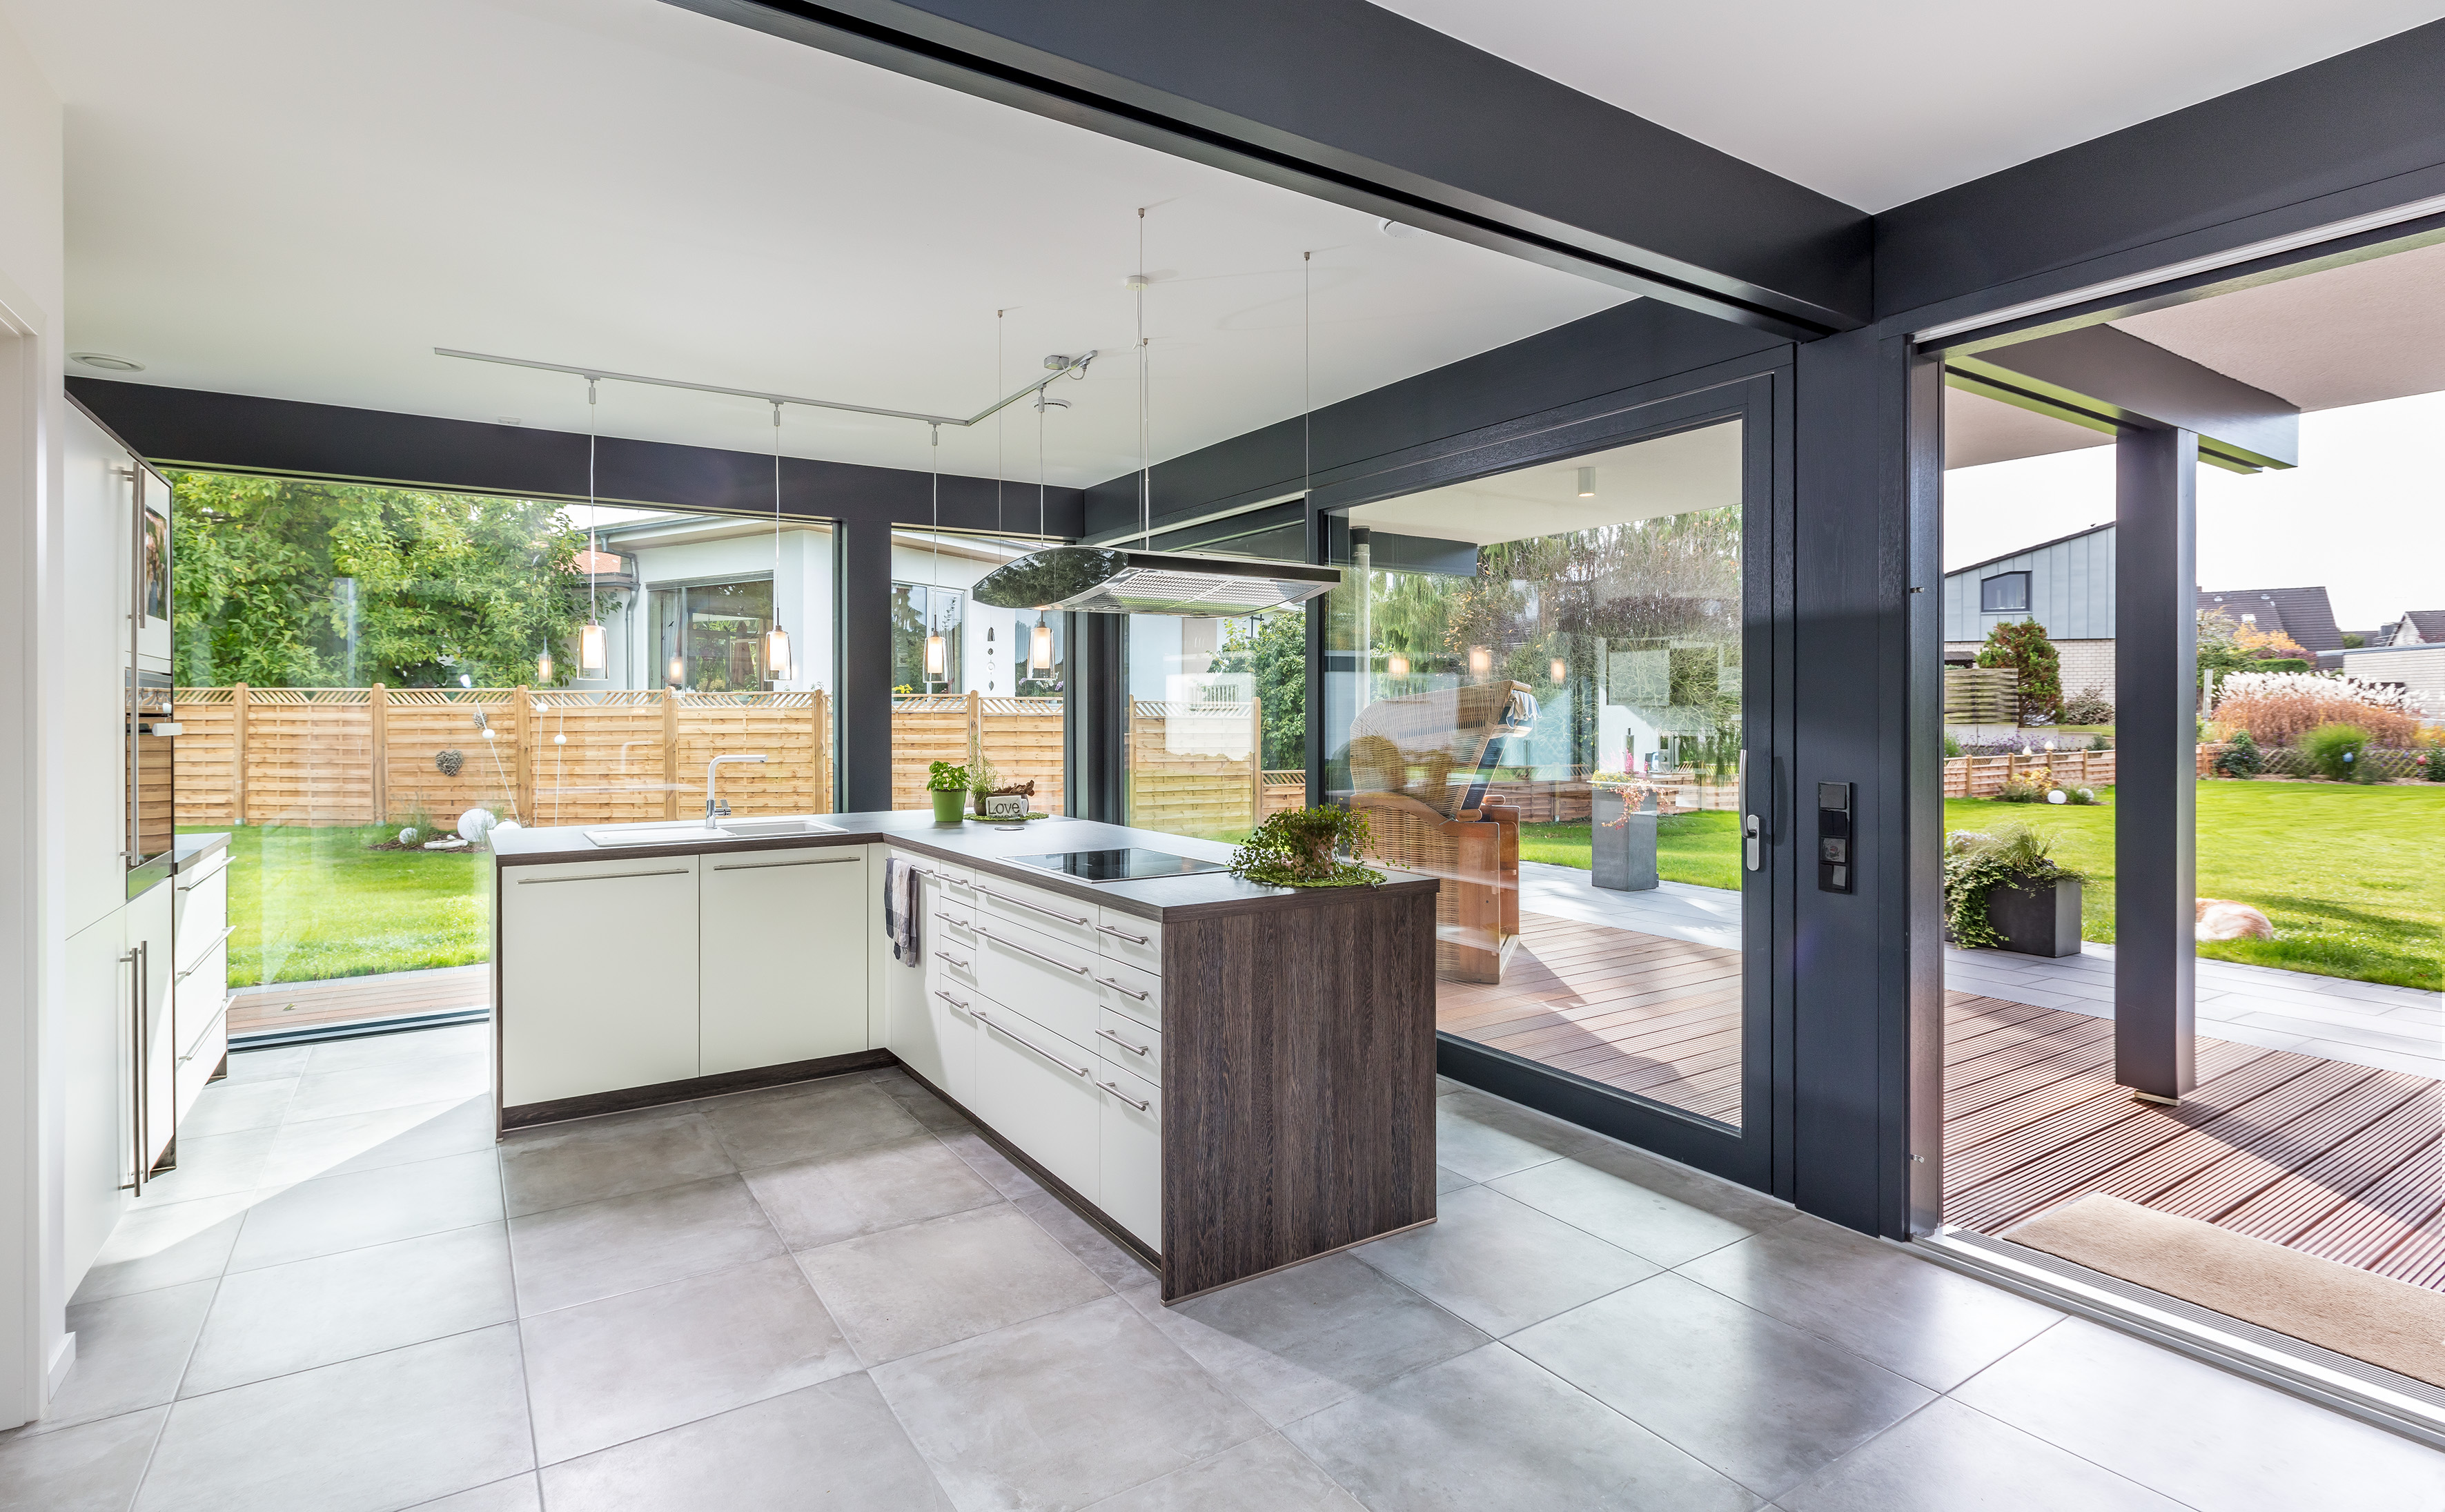 Meisterst ck haus homestory bungalow fusion for Moderne bungalows mit viel glas